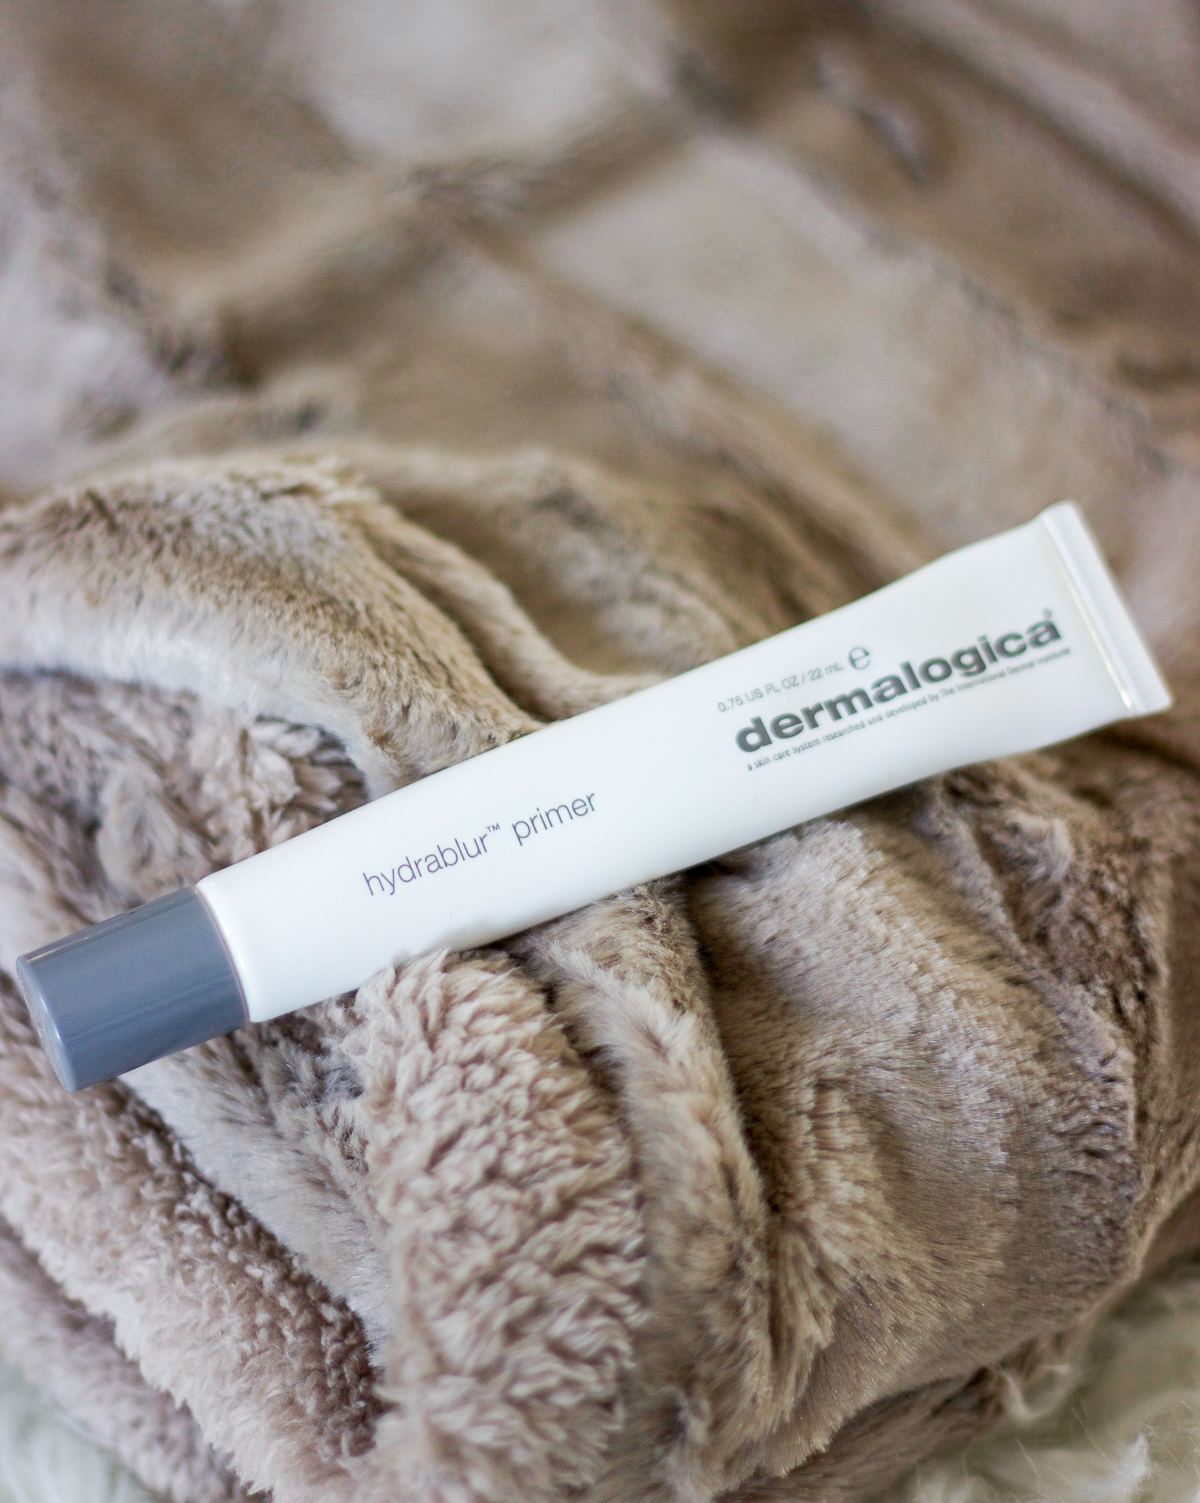 Dermalogic hydrablur primer is one of the best makeup primers I've ever tried